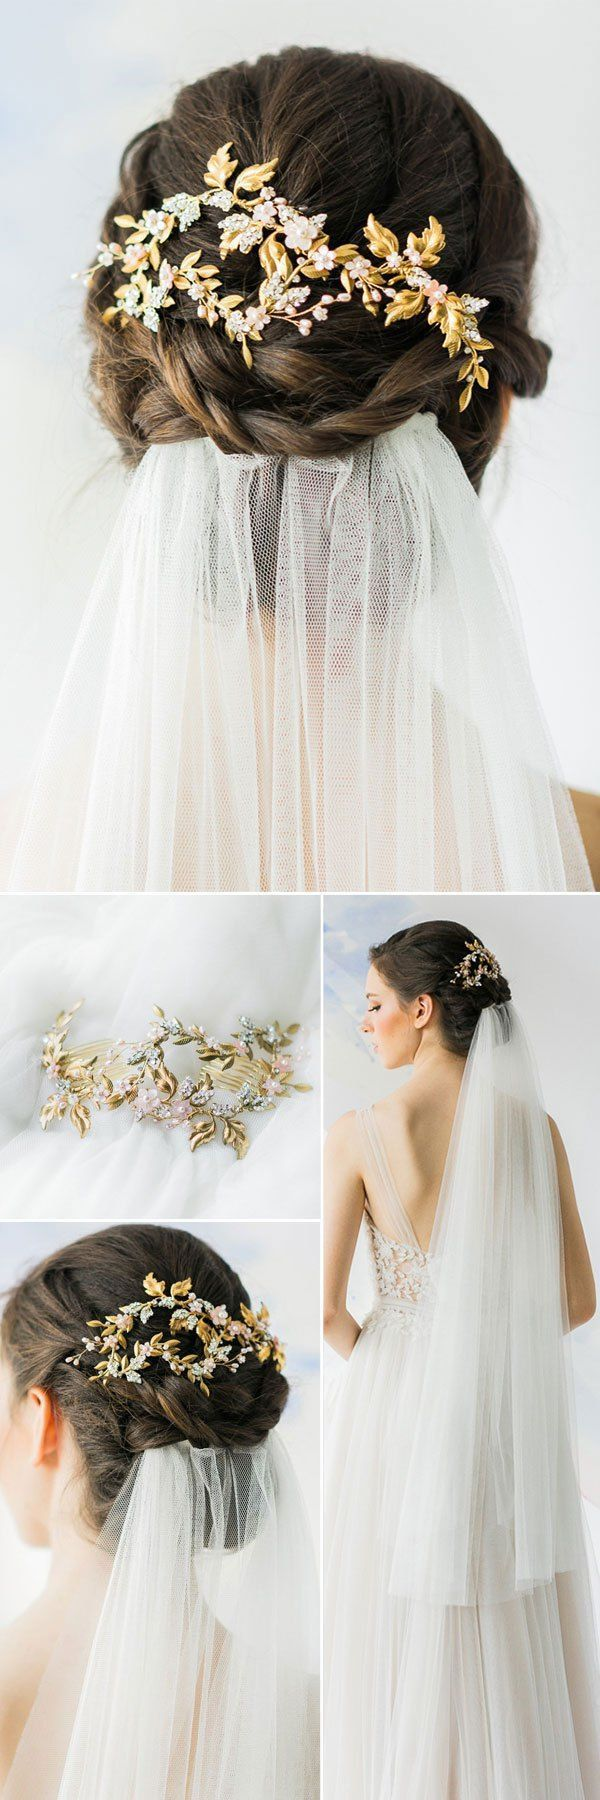 34 best All About Wedding images on Pinterest | Hairstyle ideas ...